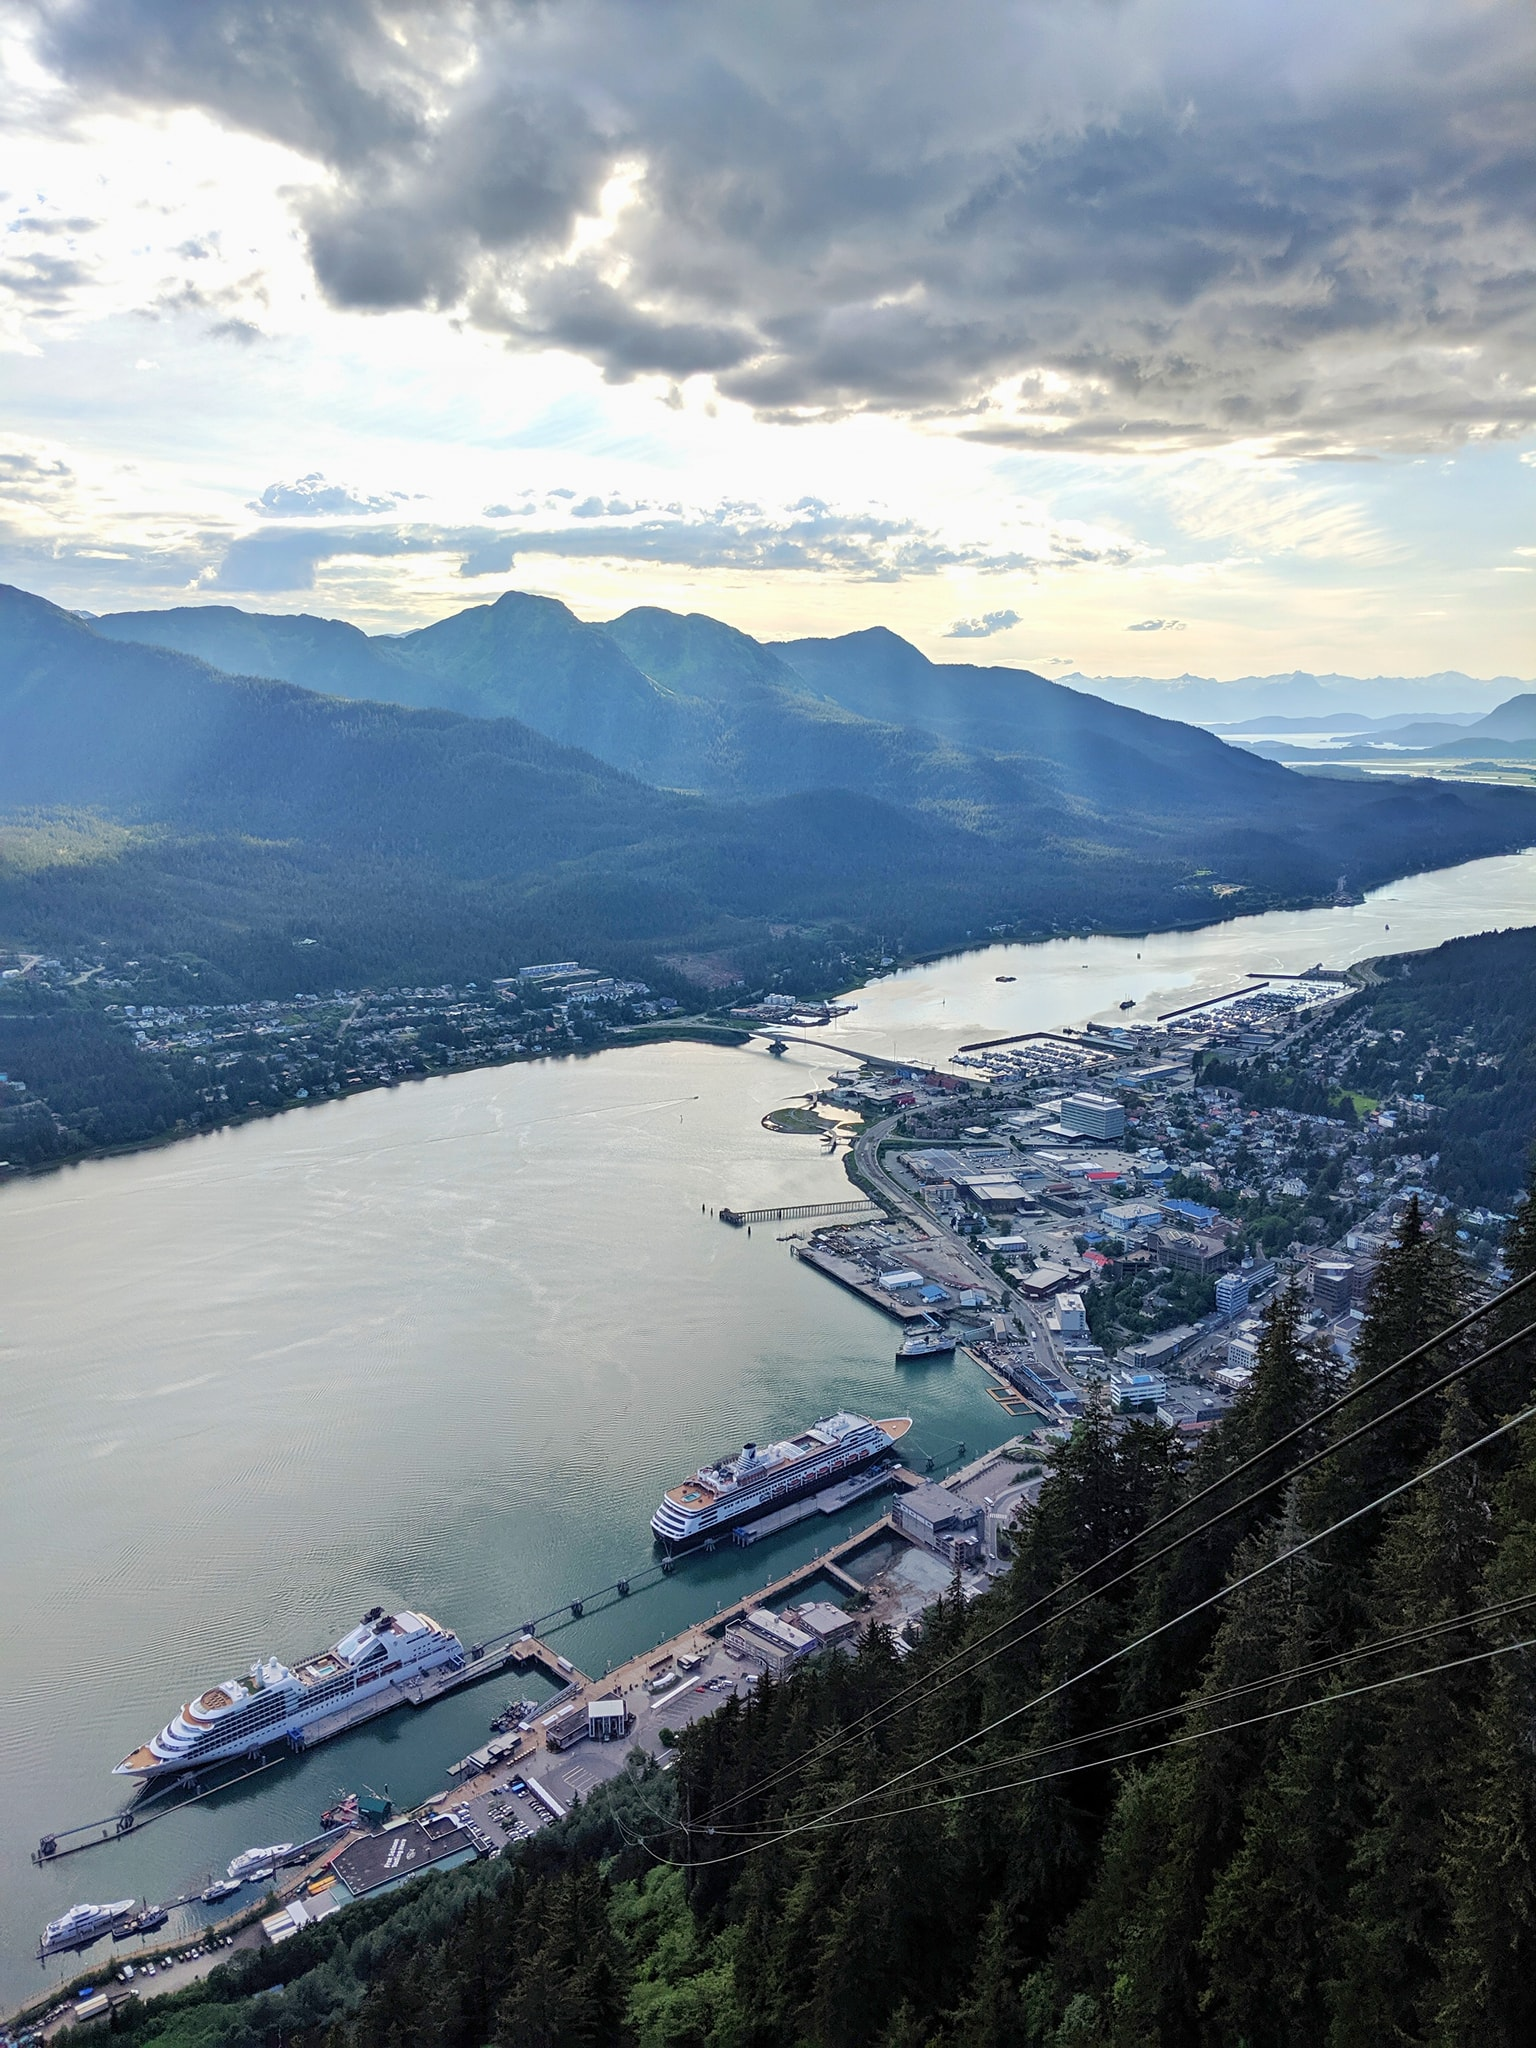 Gastineau Channel as viewed from Mount Roberts Tramway, Juneau, Alaska